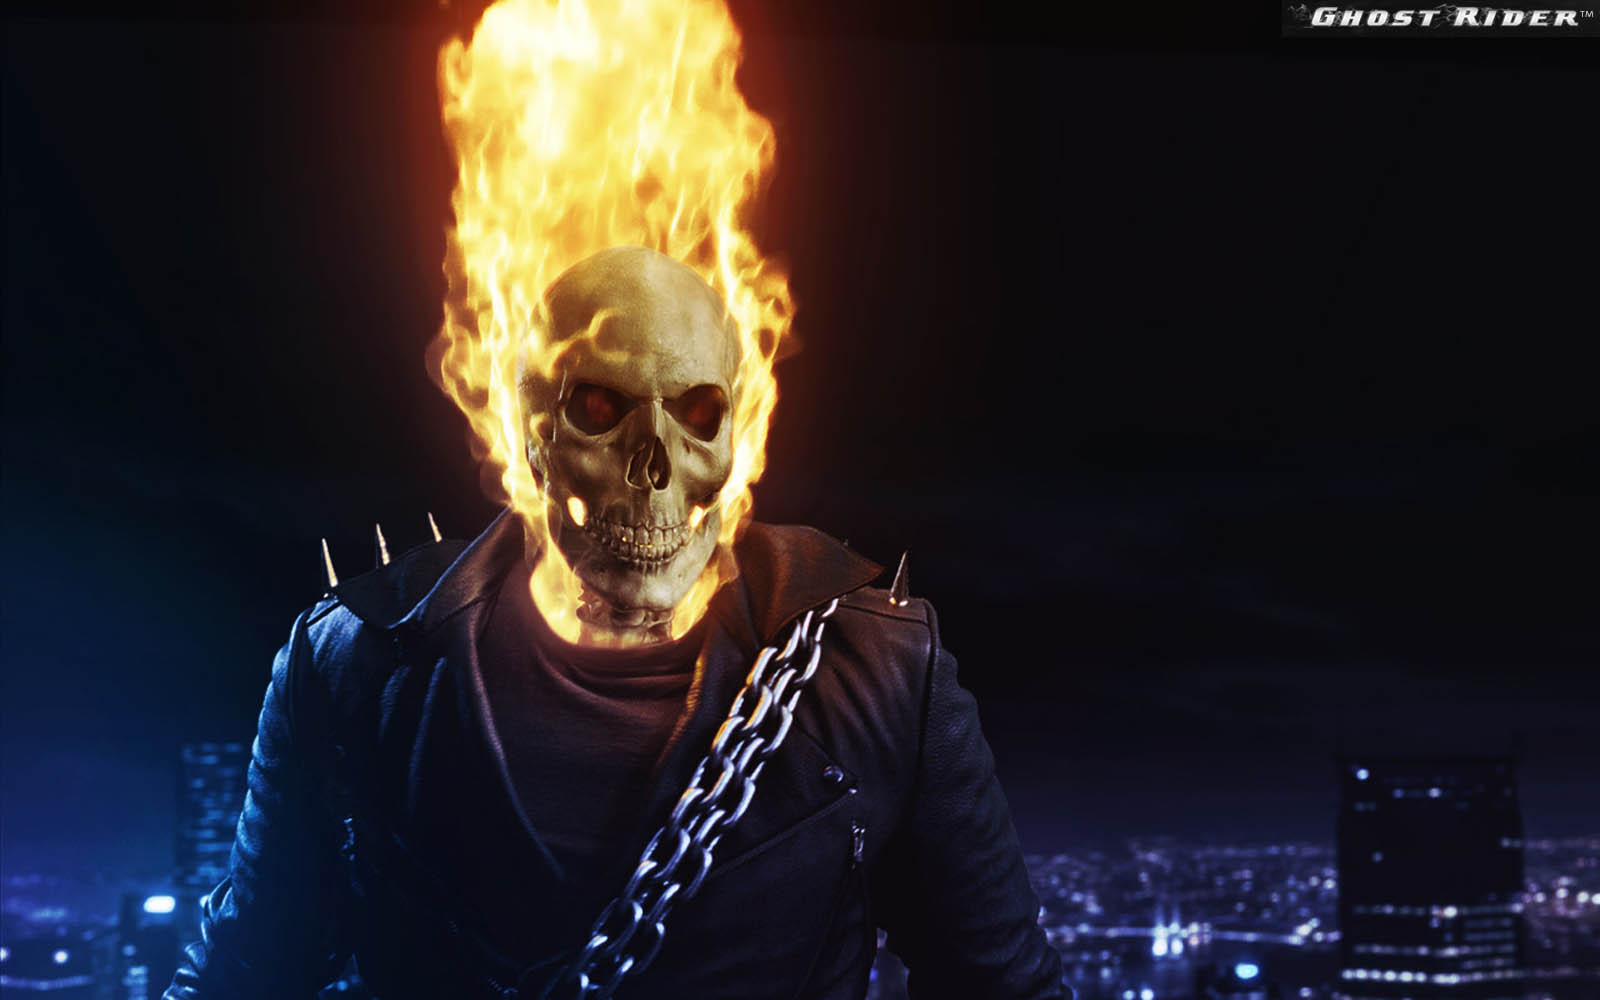 Top   Wallpaper Horse Ghost Rider - Ghost+Rider+Wallpapers+1  Perfect Image Reference_983283.jpg